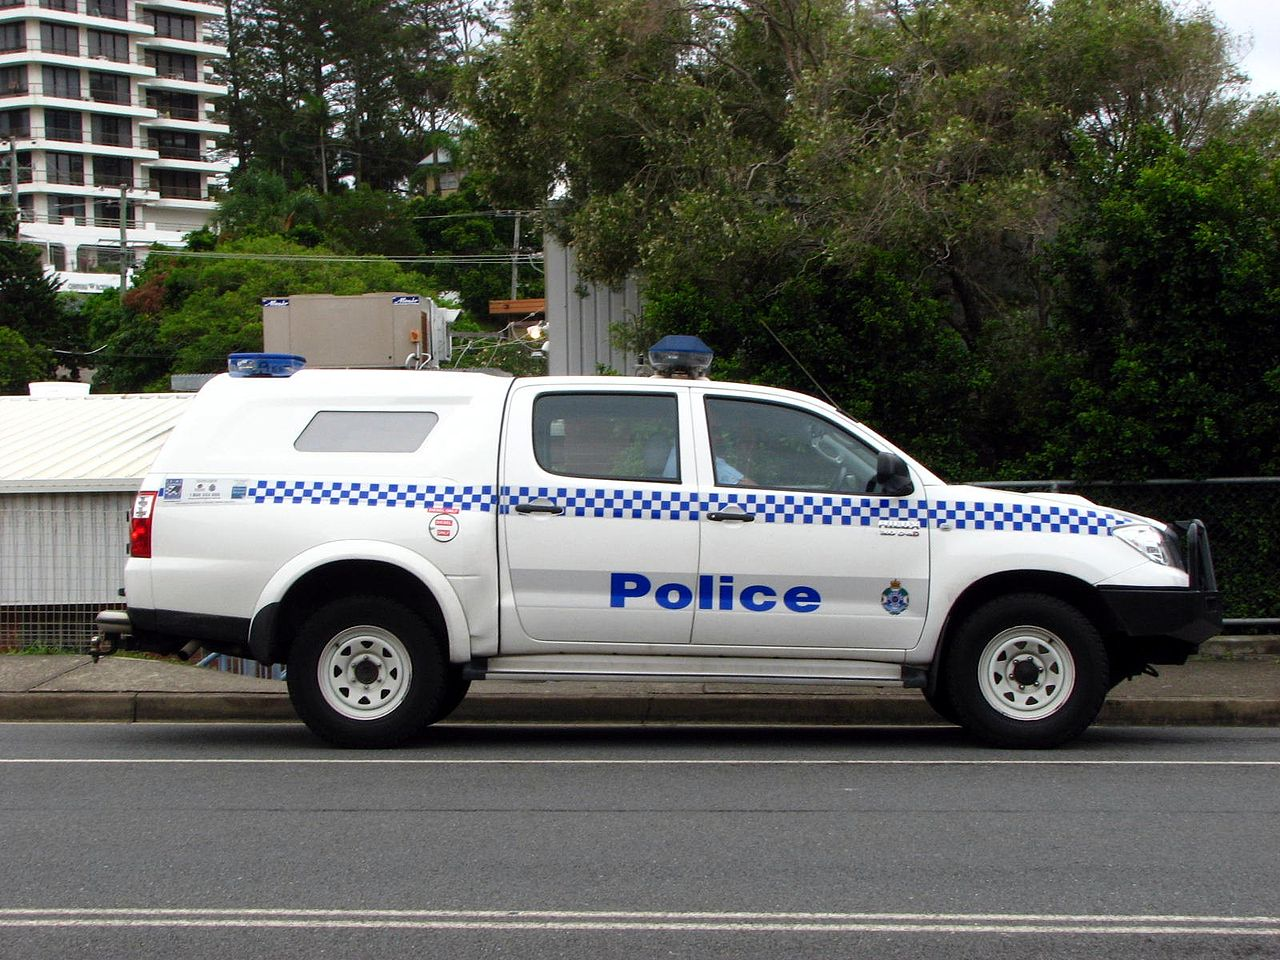 FileQLD Police u0027HIMEN  Toyota Hilux 4X4 with Holden Crewman rear ute-canopy - Flickr - Highway Patrol Images.jpg & File:QLD Police u0027HIMEN